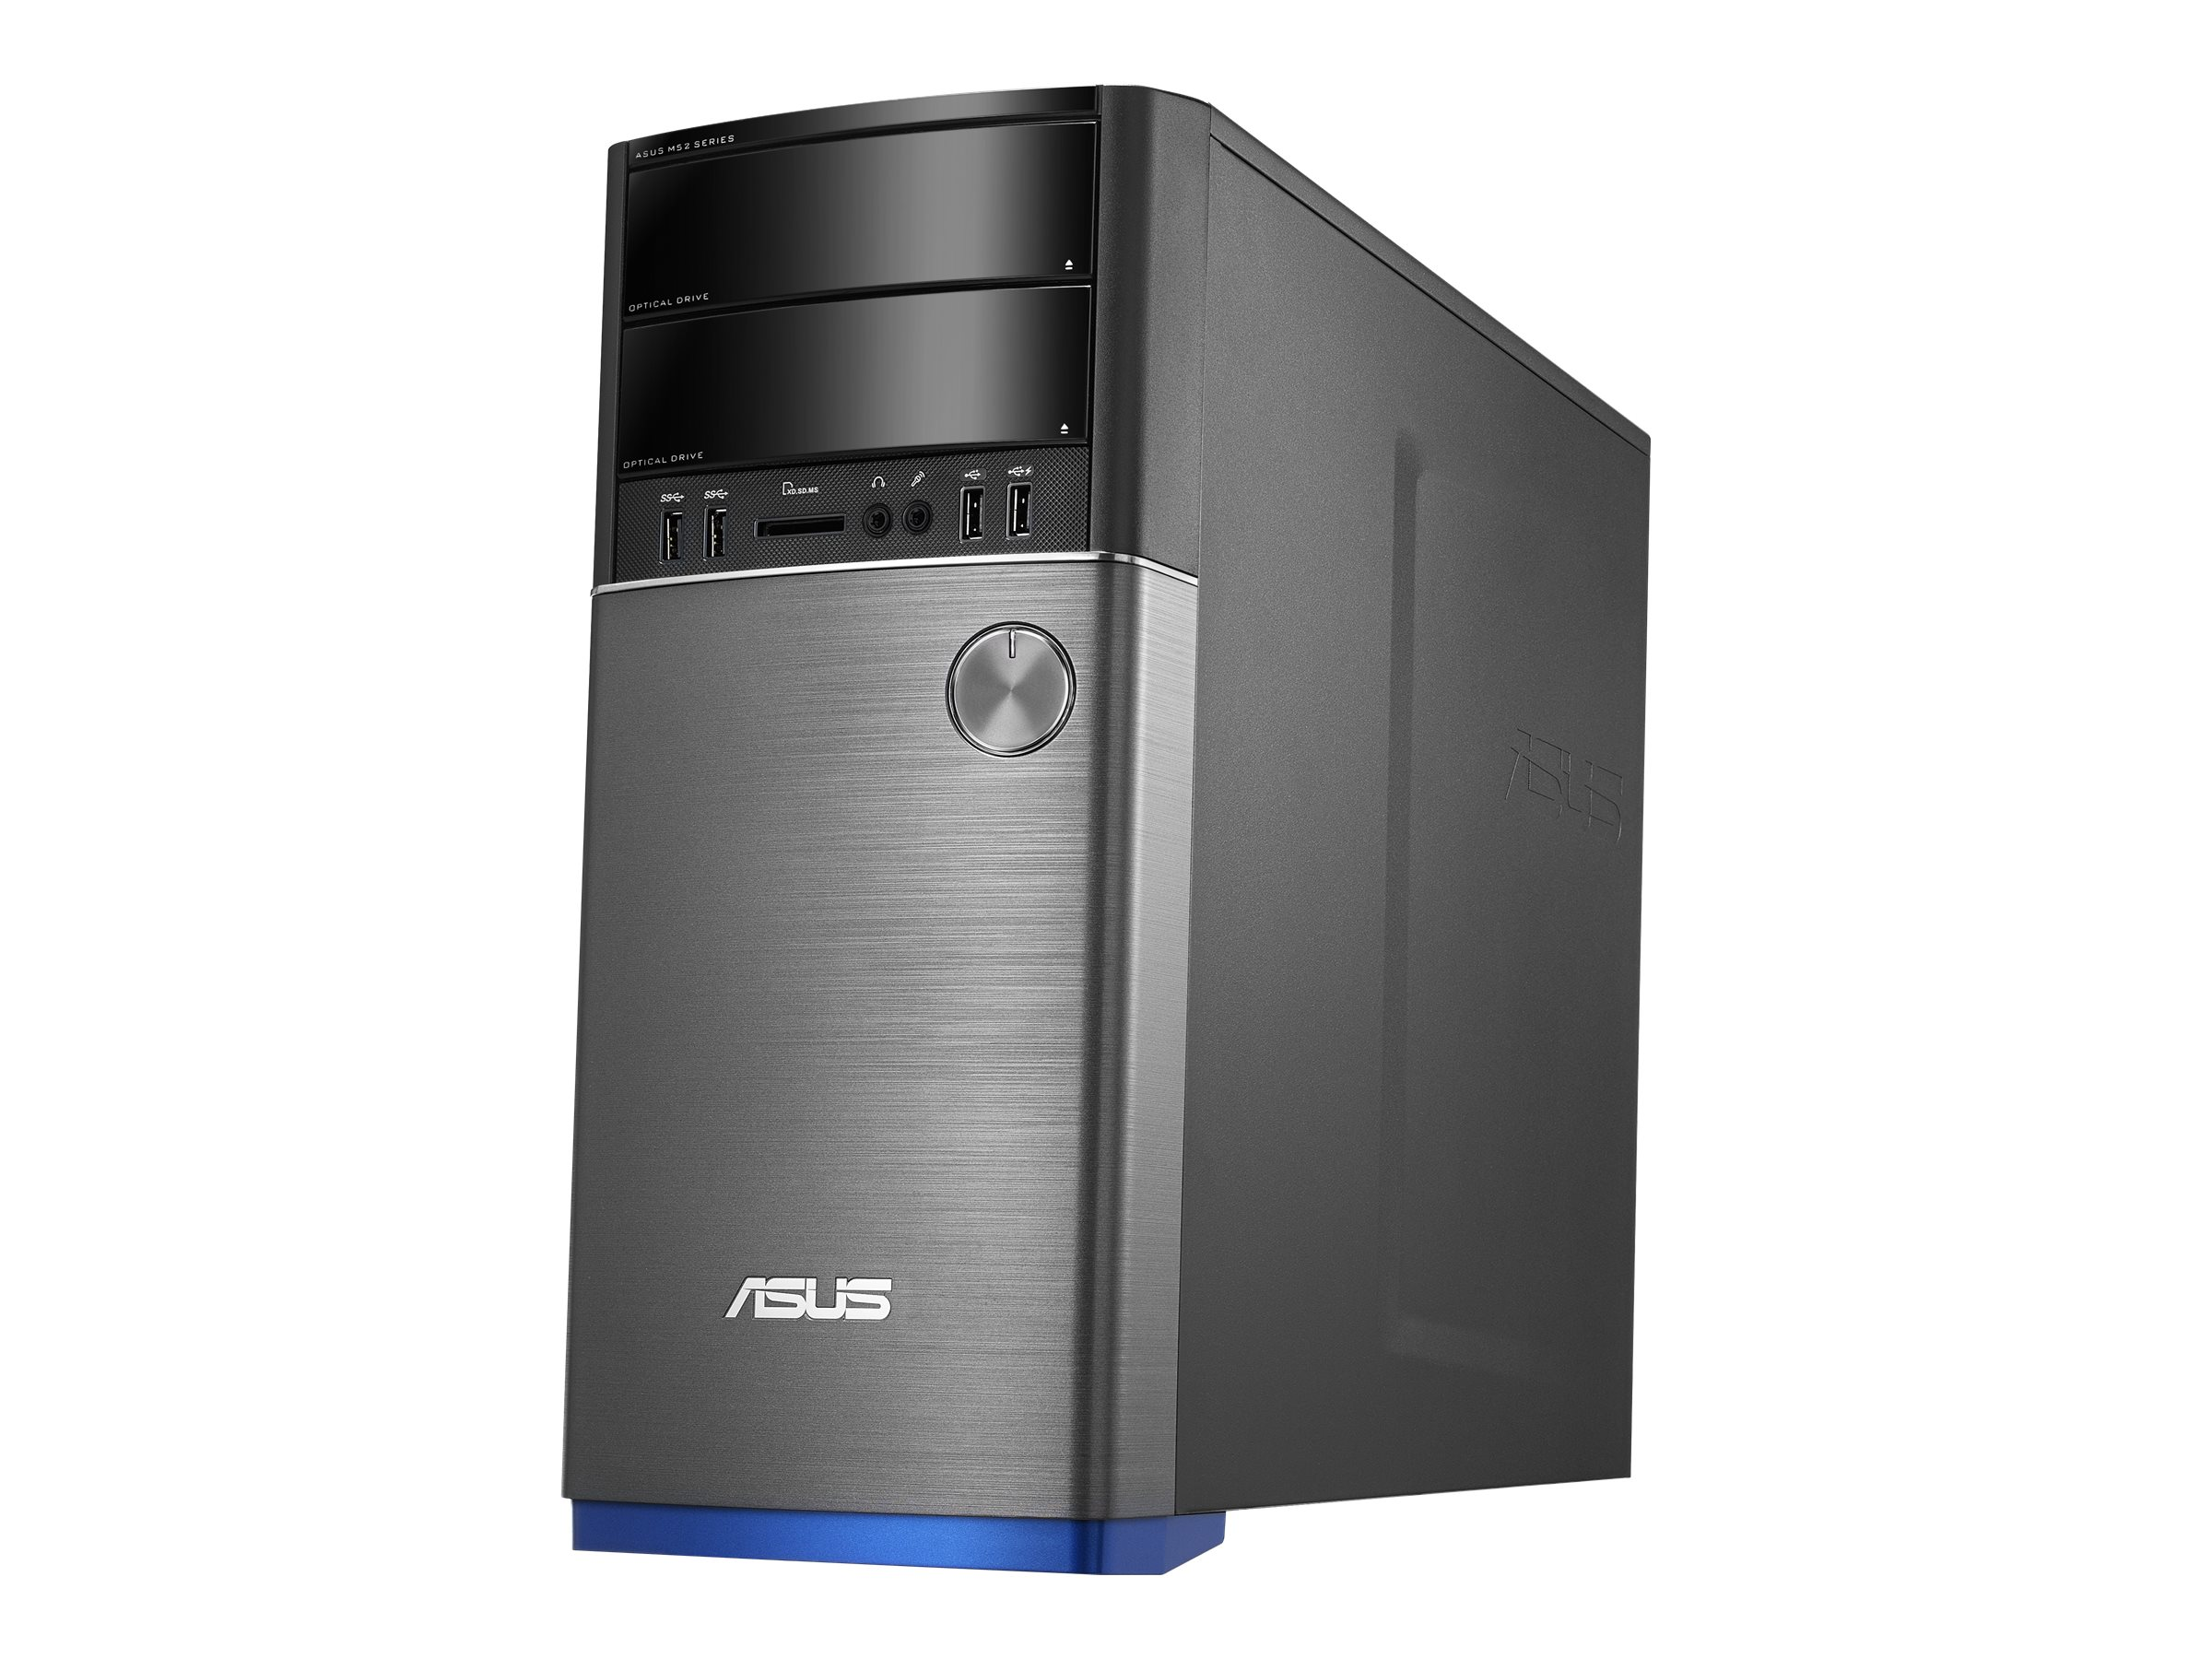 Asus M52BC-US005S Desktop FX-8300 3.3GHz 8GB, 90PD0141-M00090, 18007788, Desktops